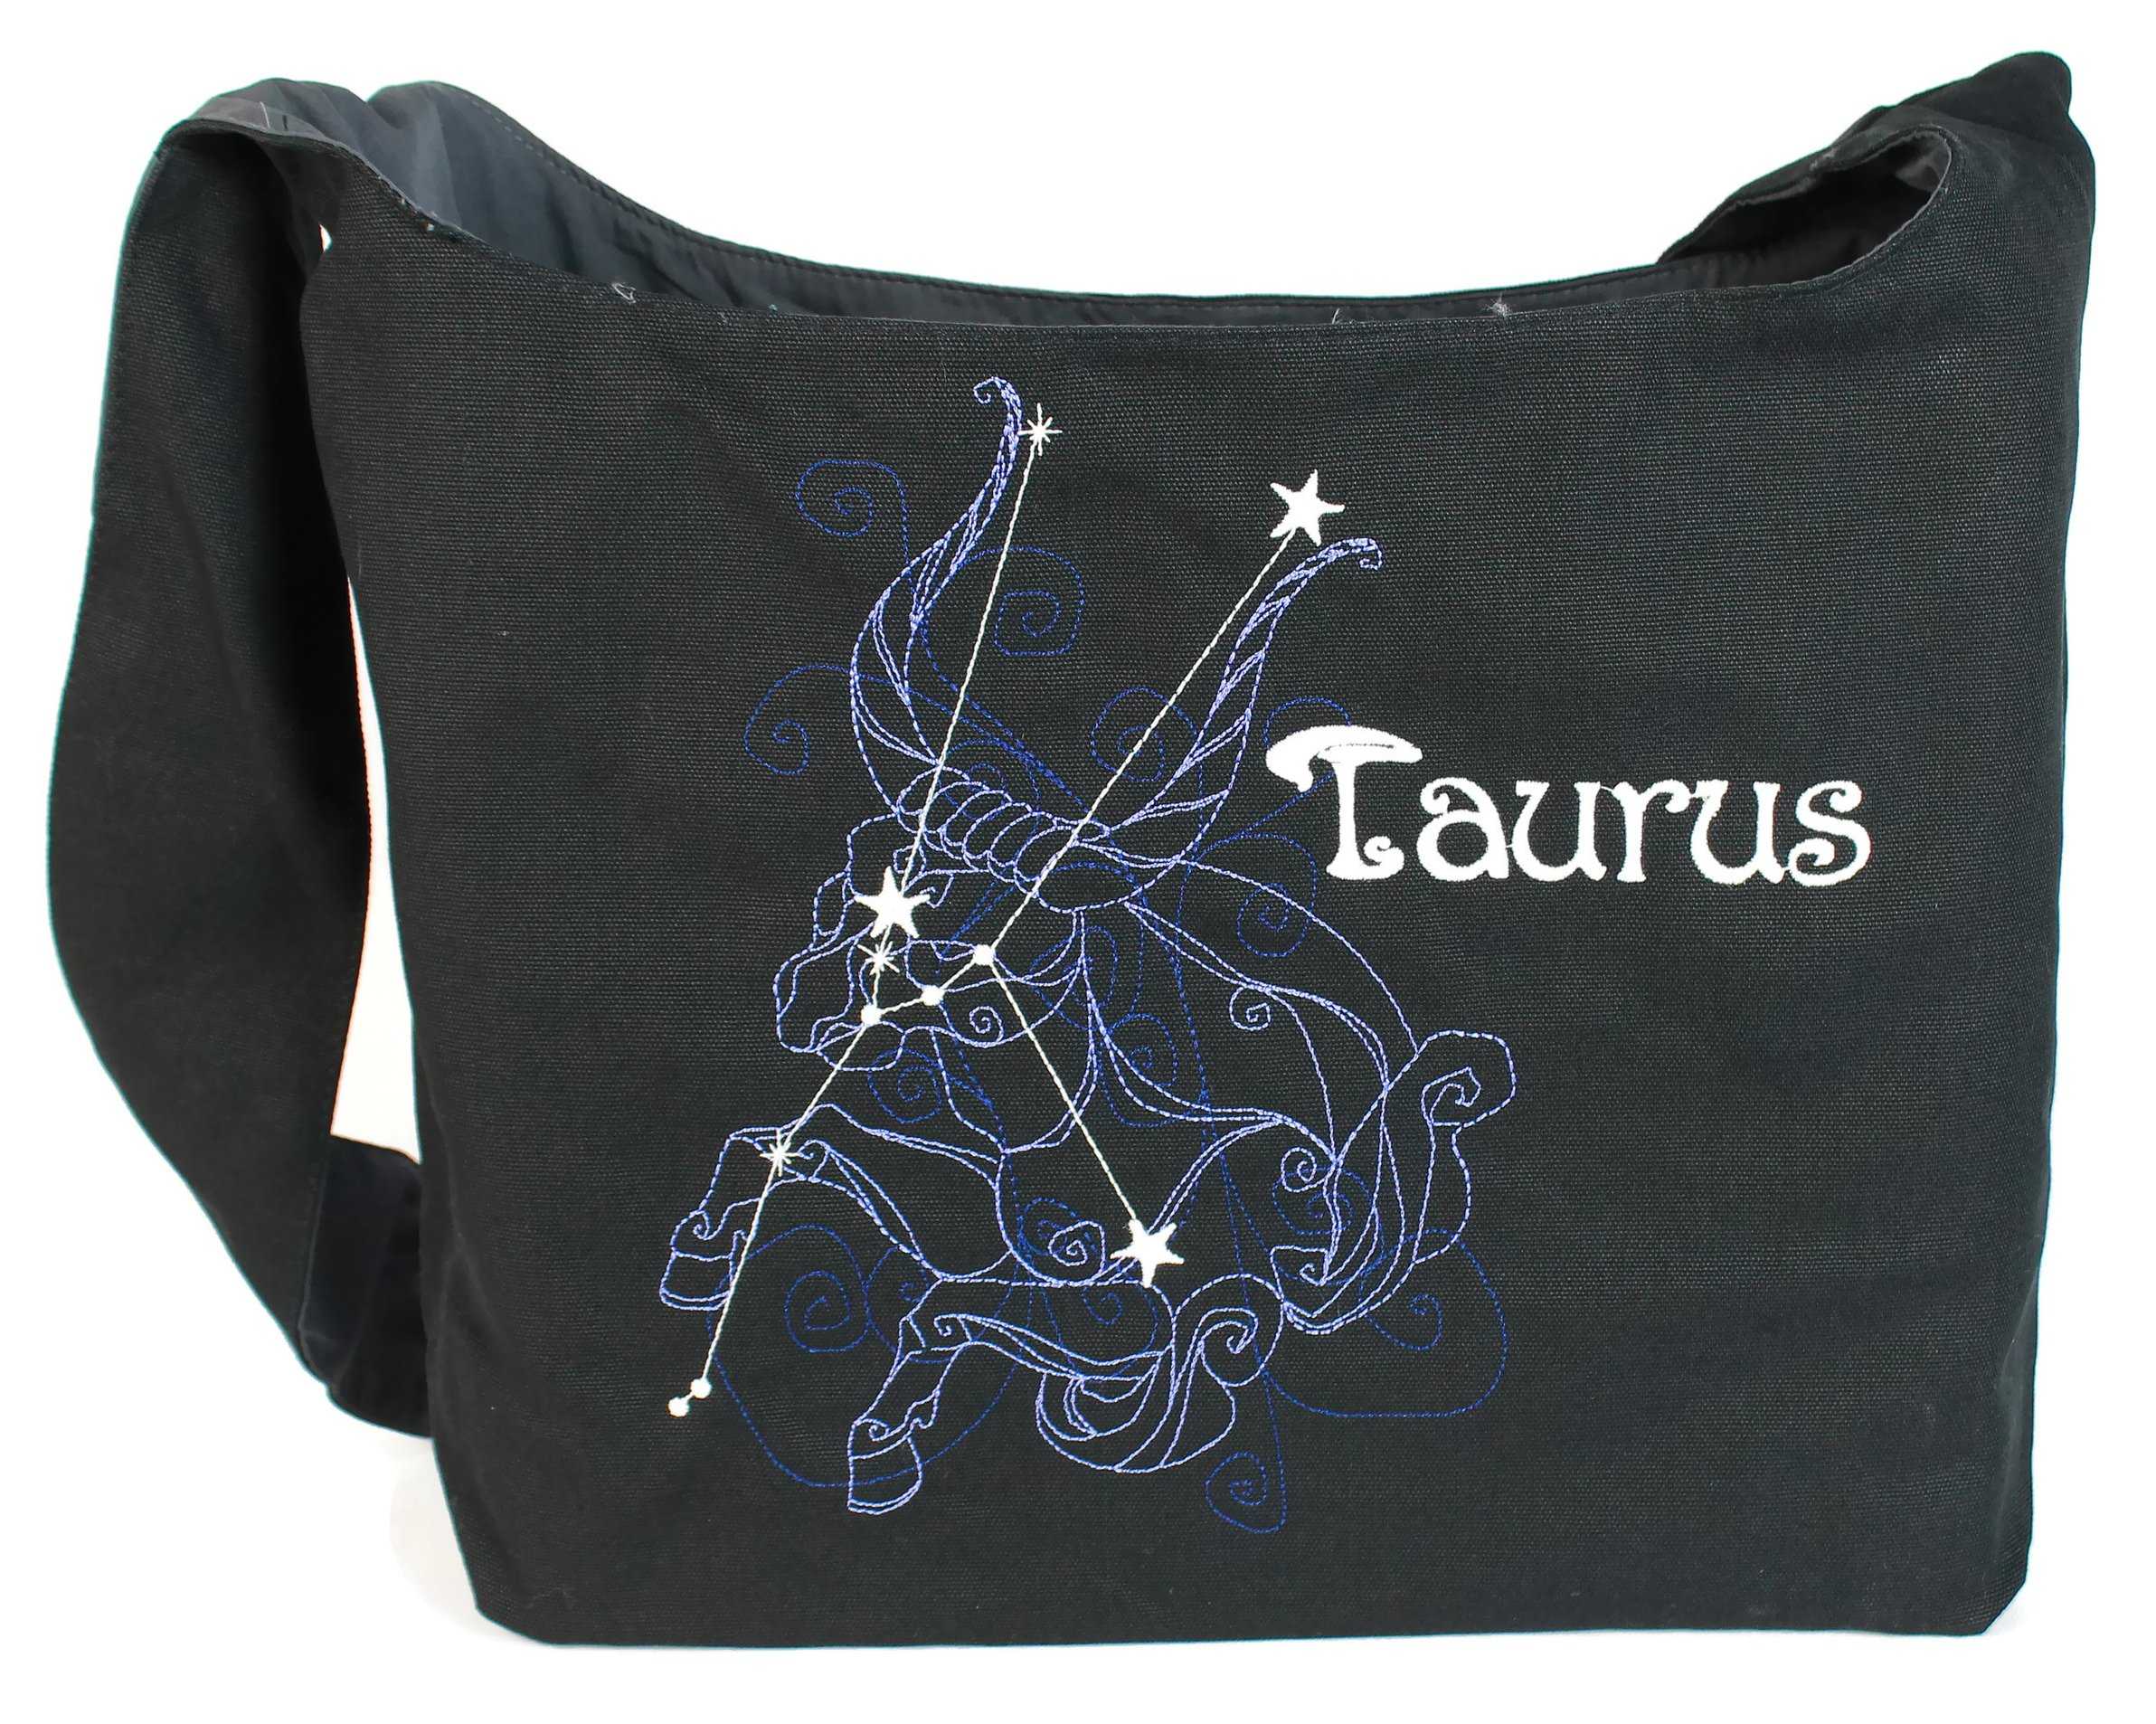 Dancing Participle Taurus Embroidered Sling Bag